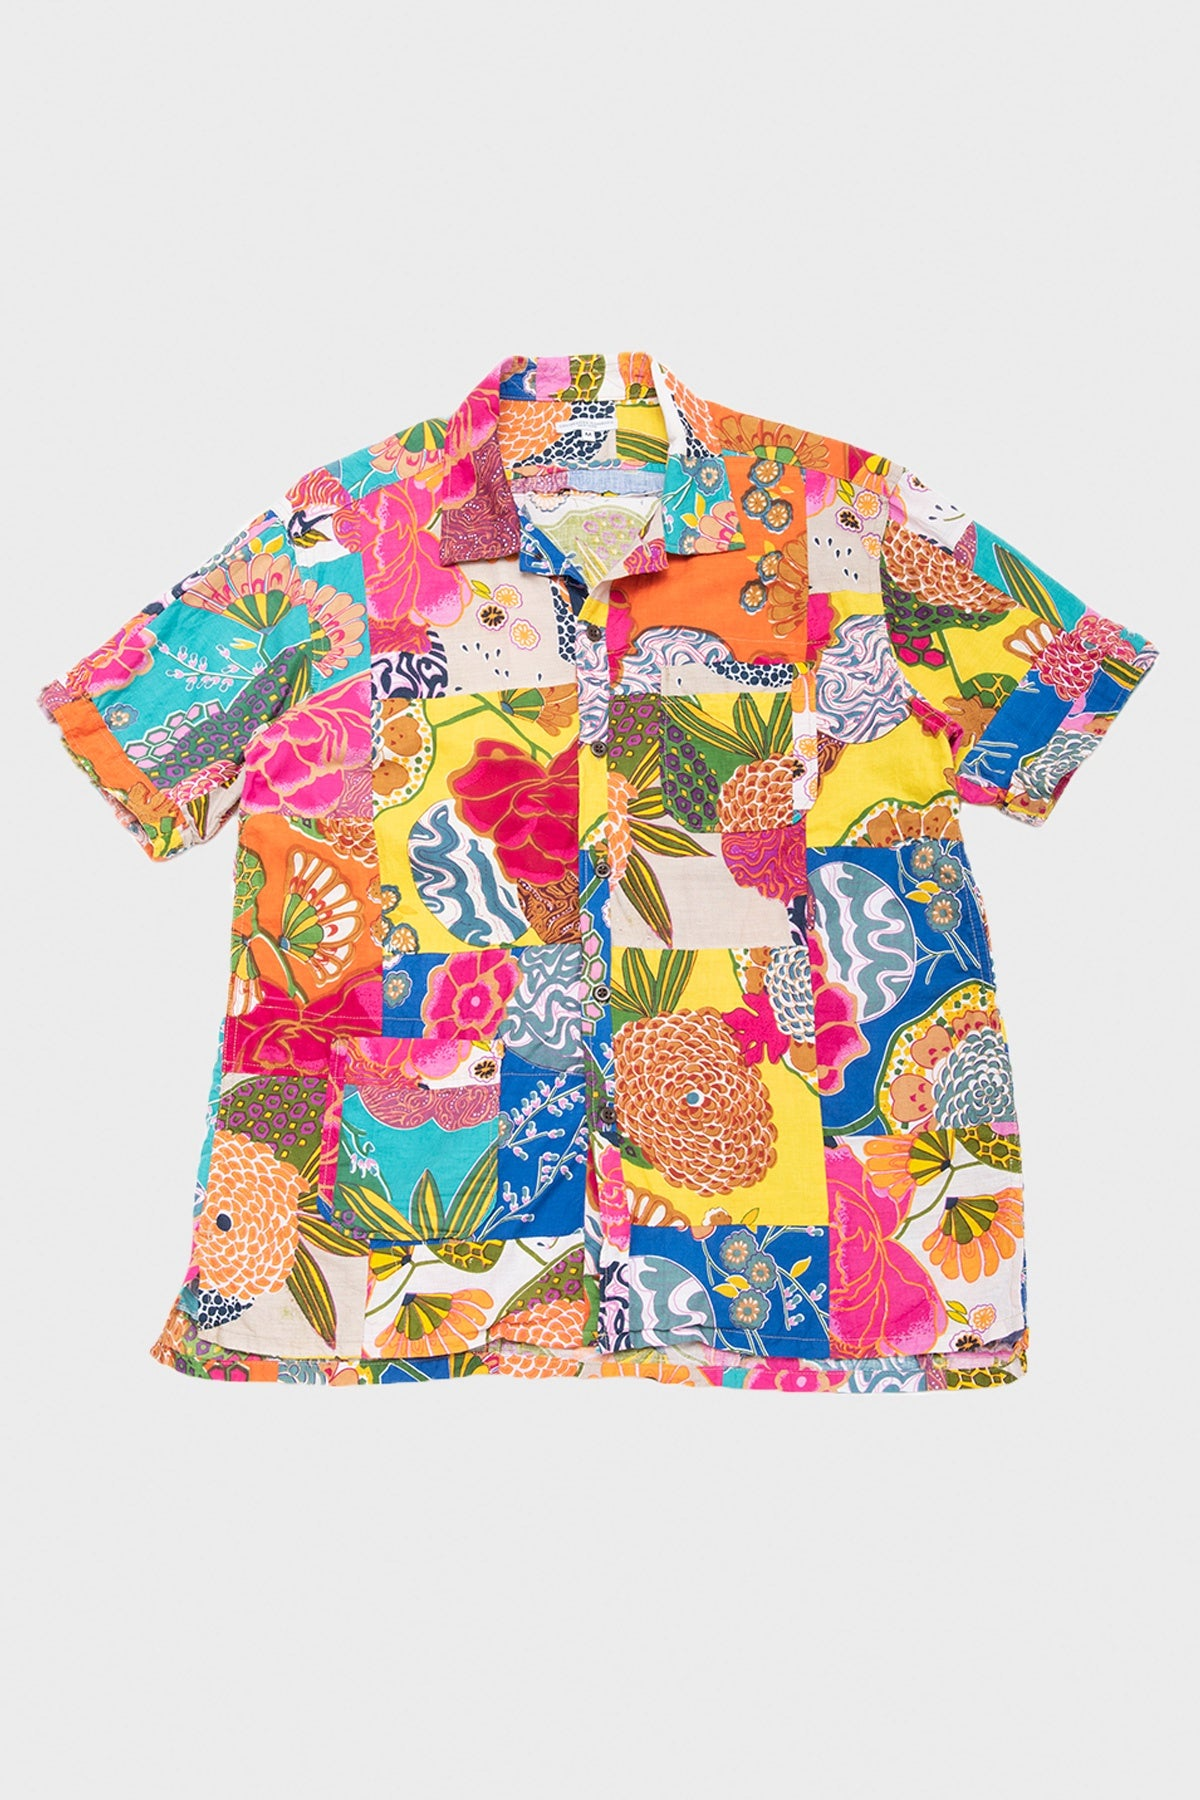 Engineered Garments - Camp Shirt - Floral Patchwork - Canoe Club